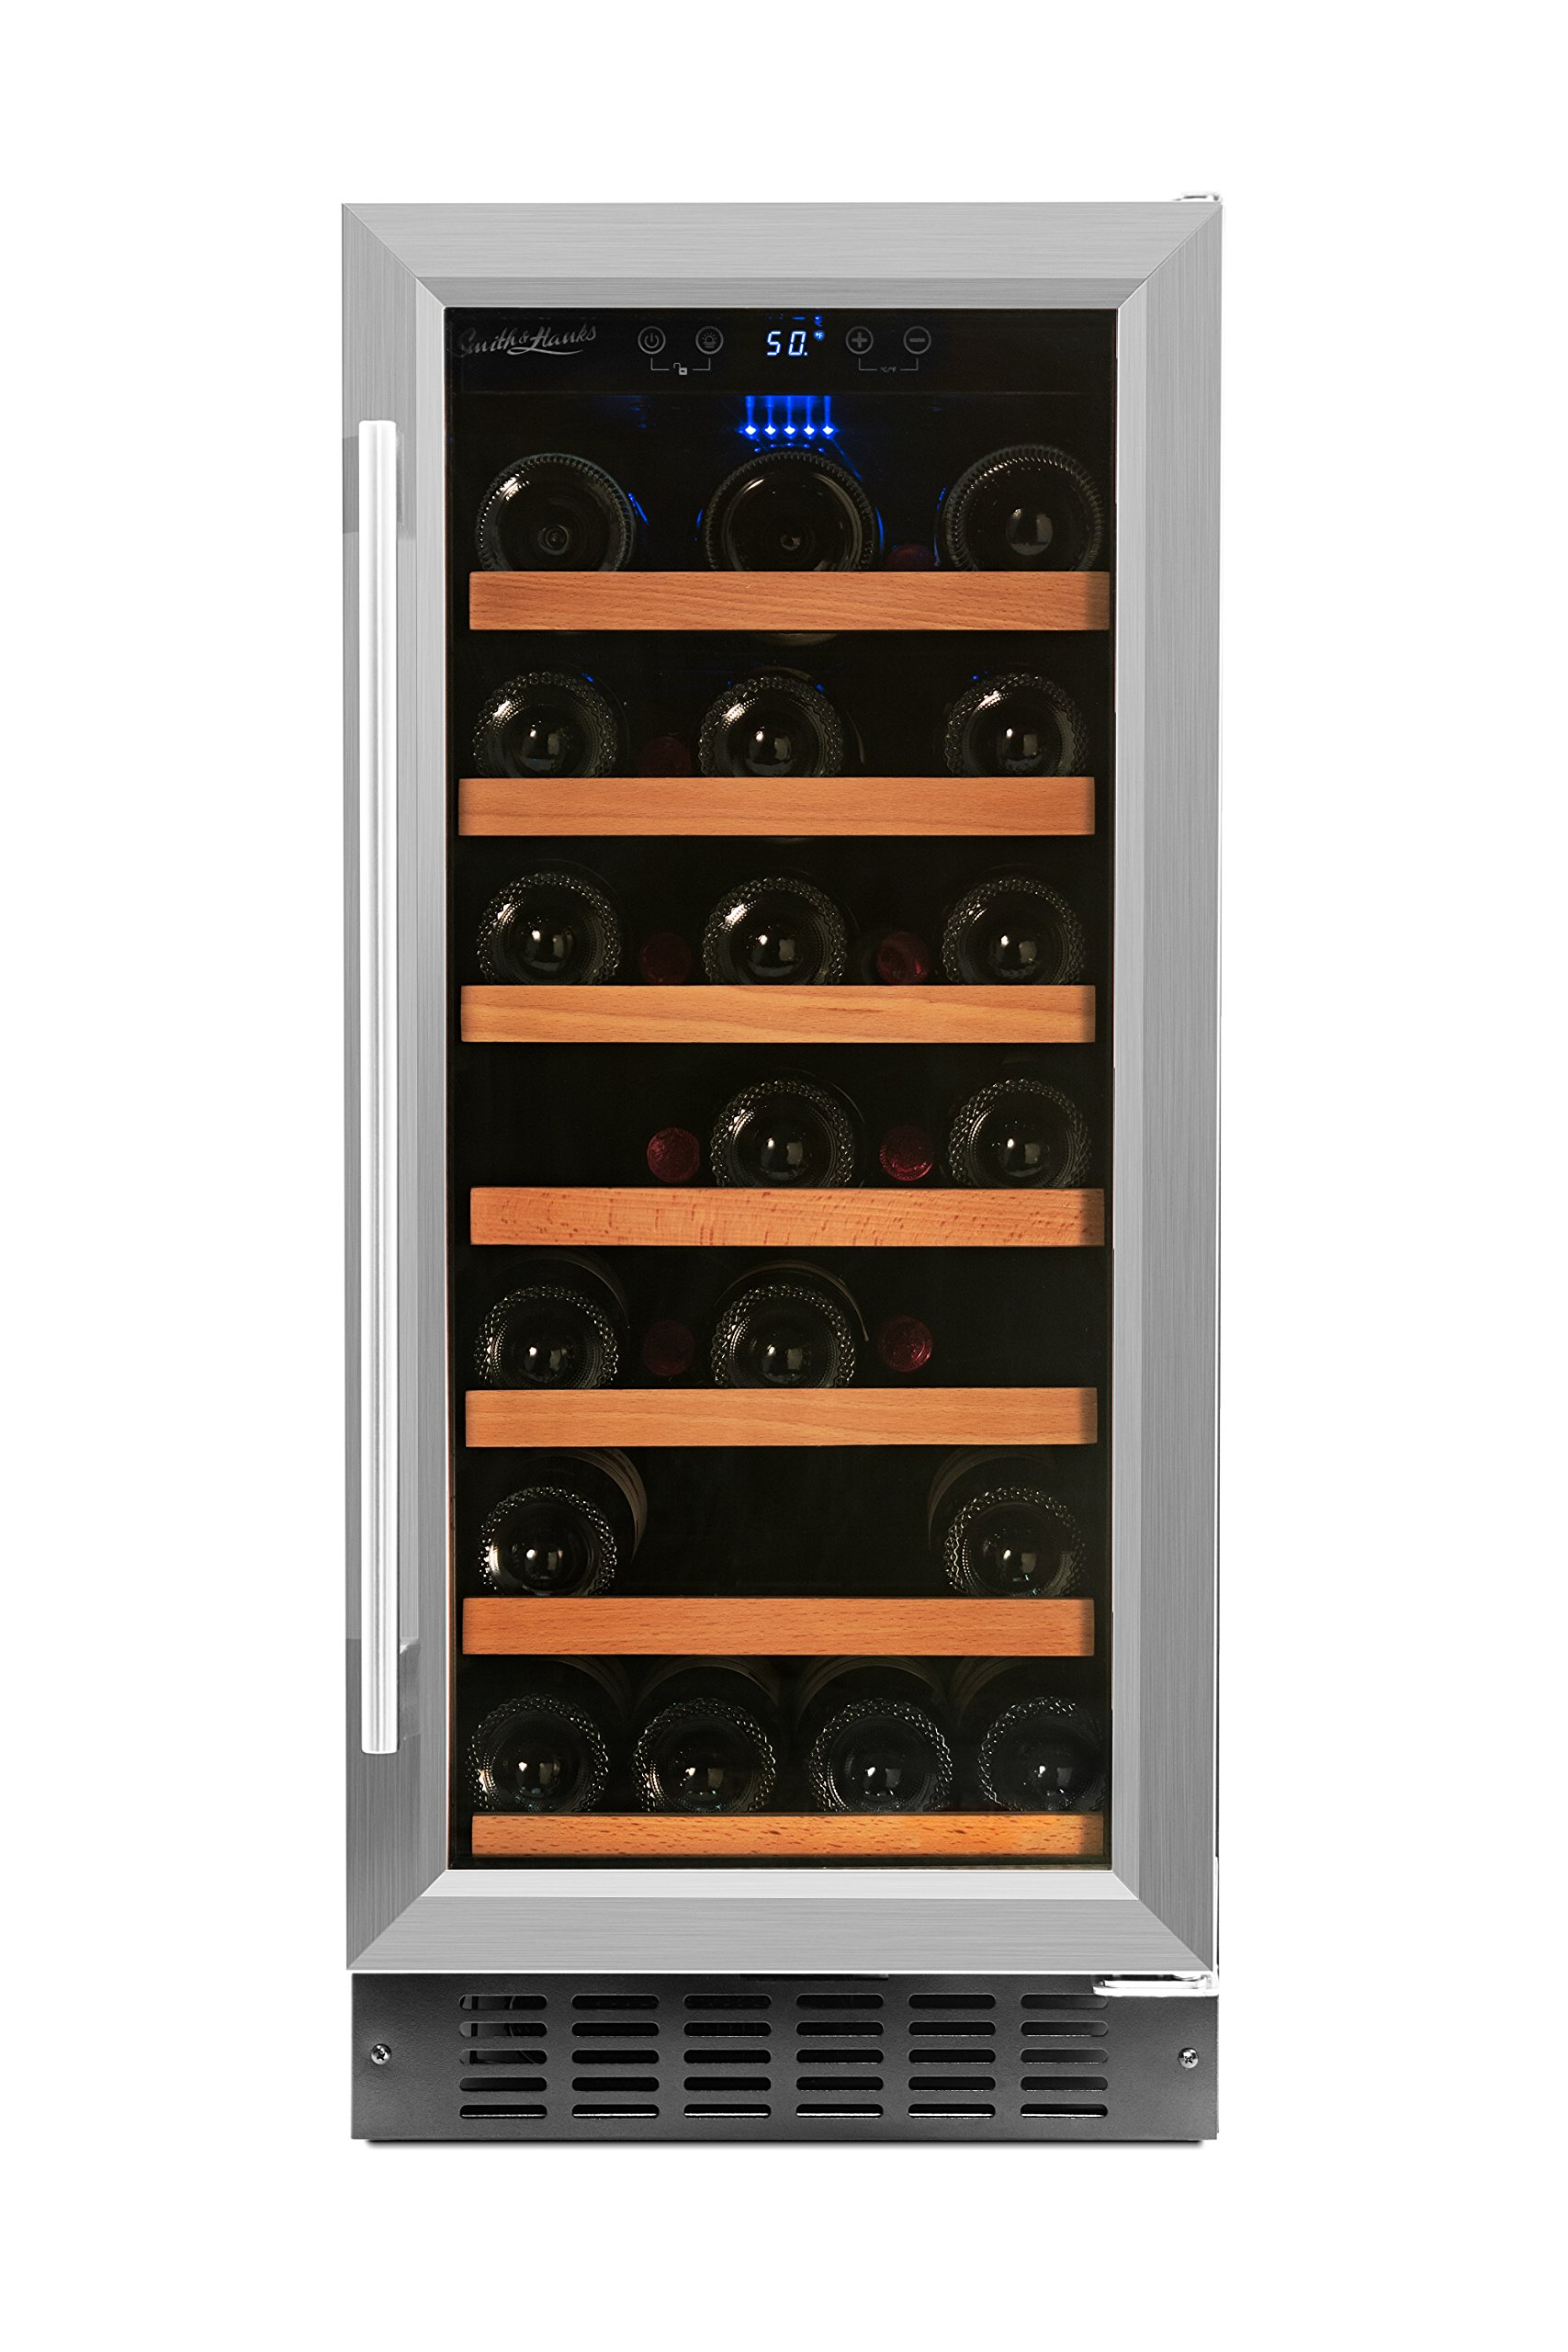 Smith & Hanks RW88SR 34 Bottle Under Counter Wine Refrigerator, 15 Inches Wide, Use Built In Or Free Standing